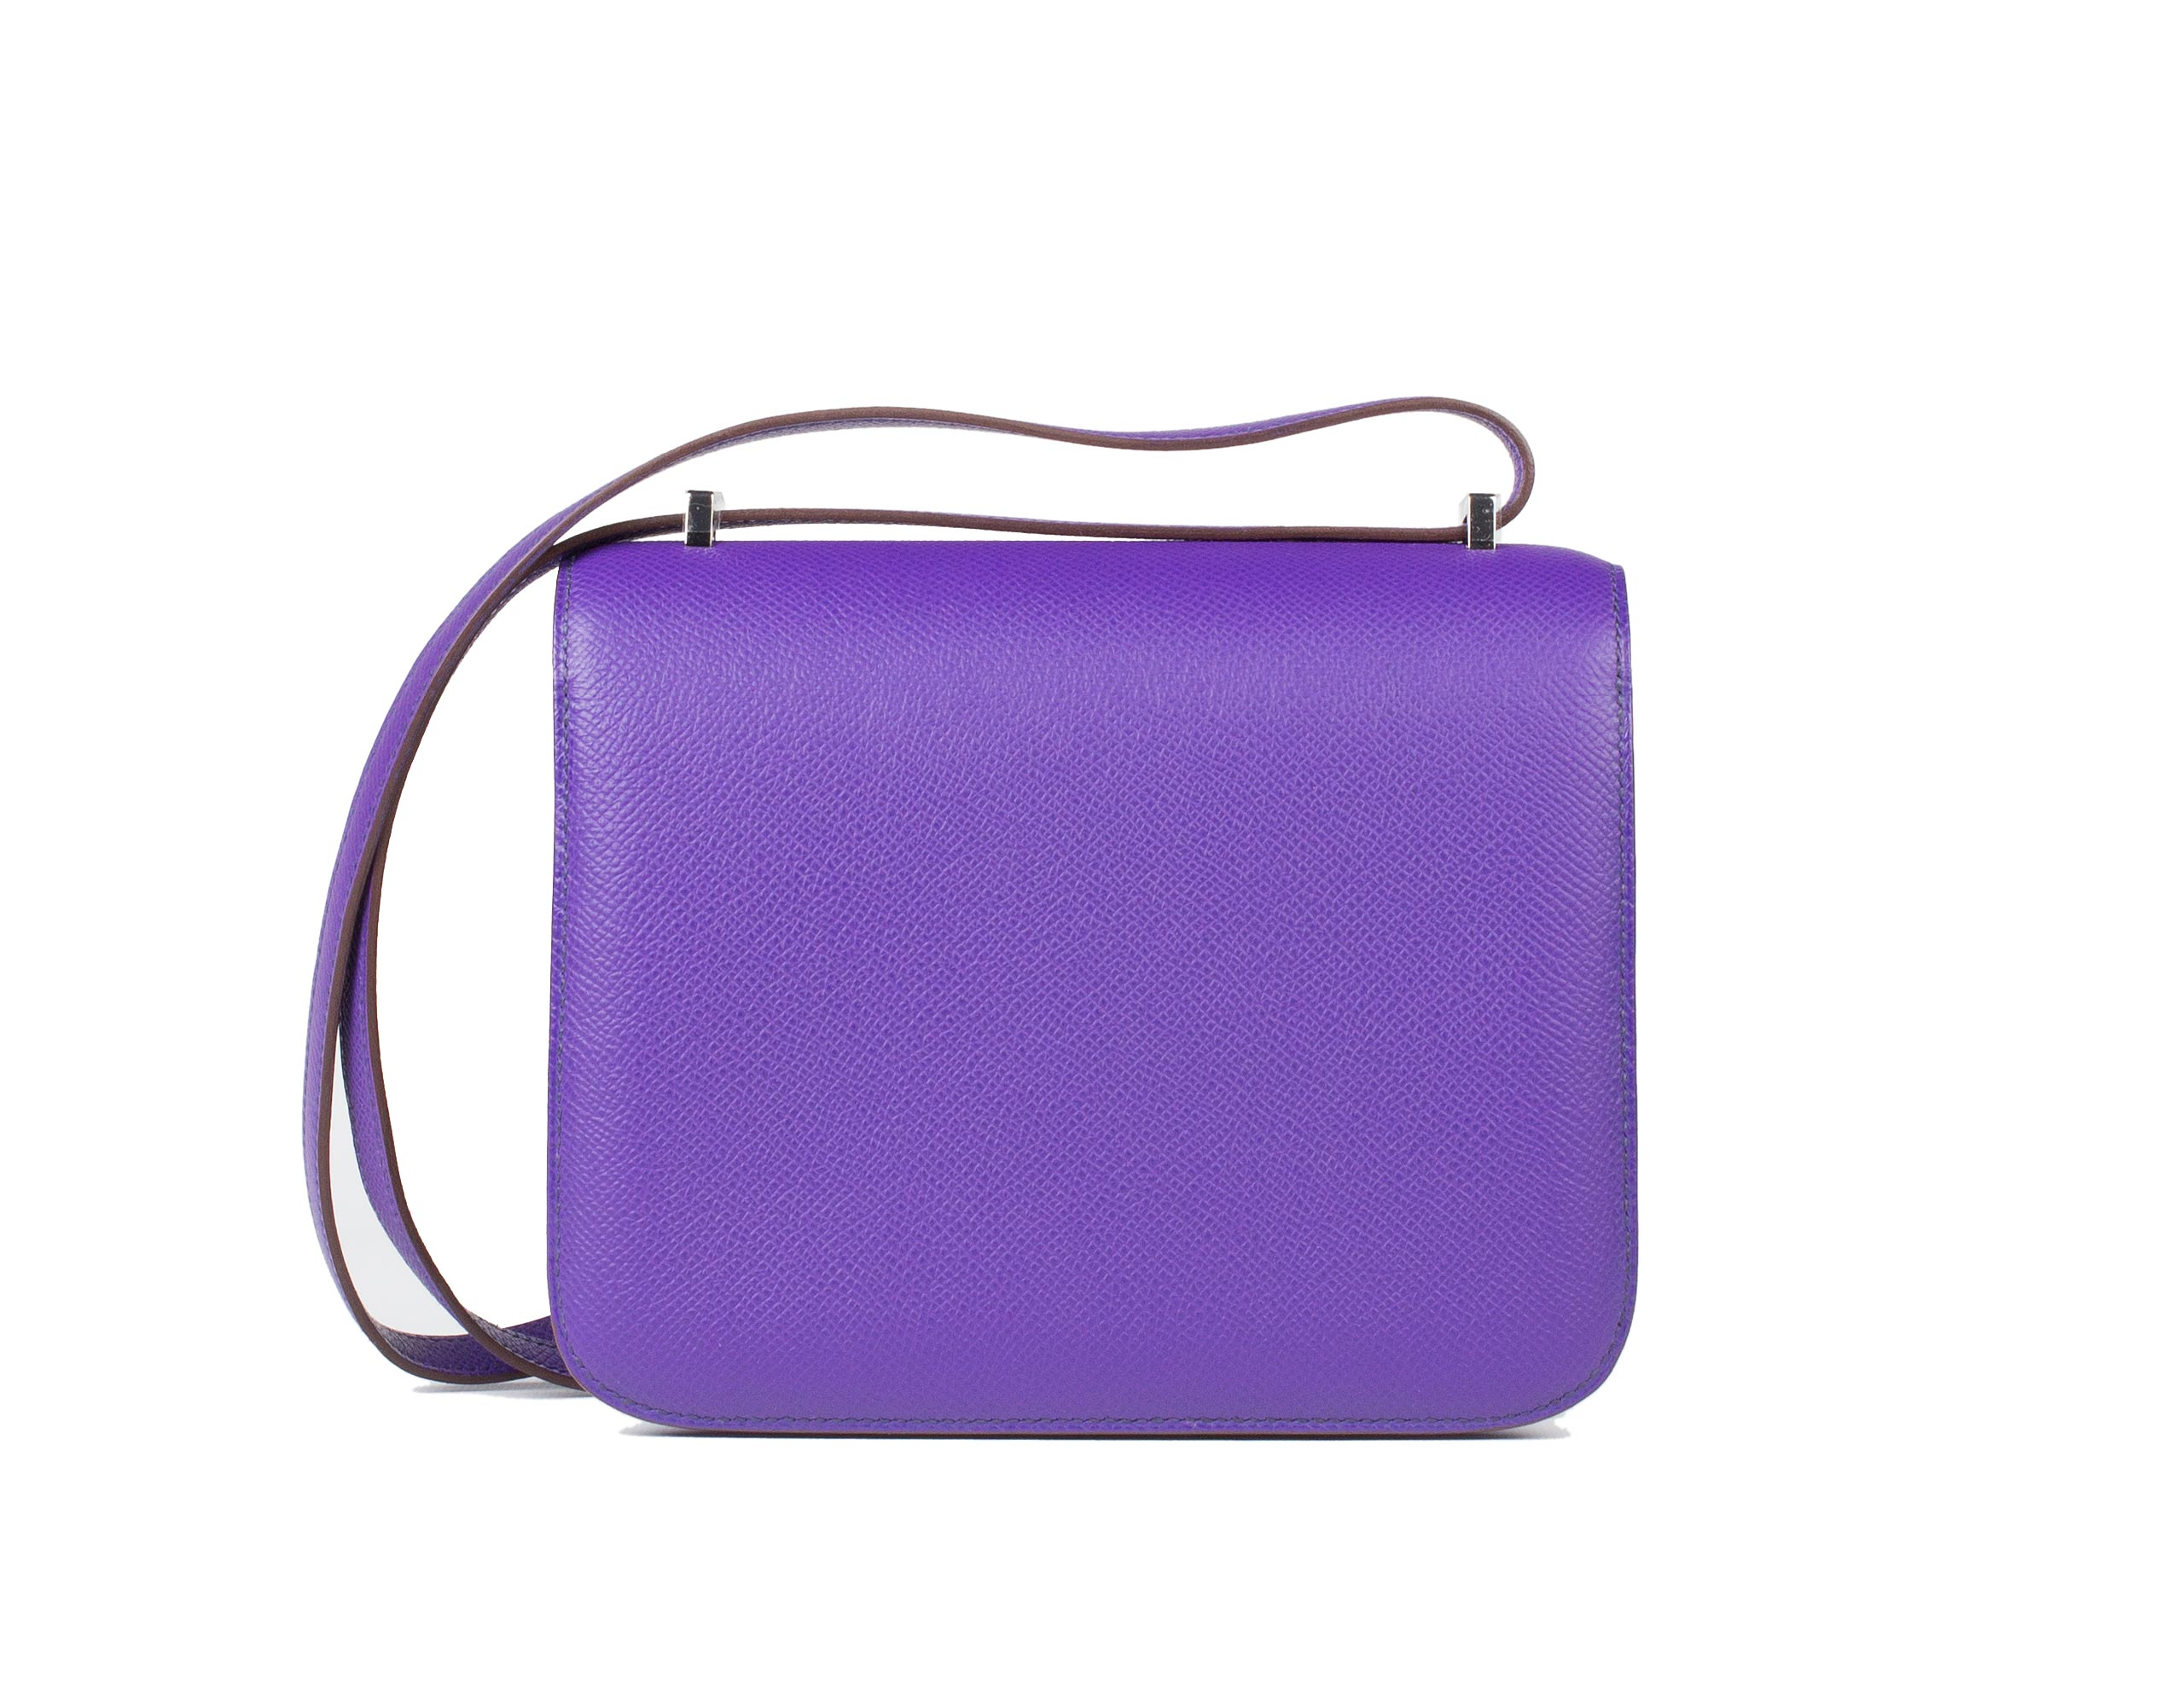 Hermes Bag Constance Mini Crocus Epsom 18cm C12 Back